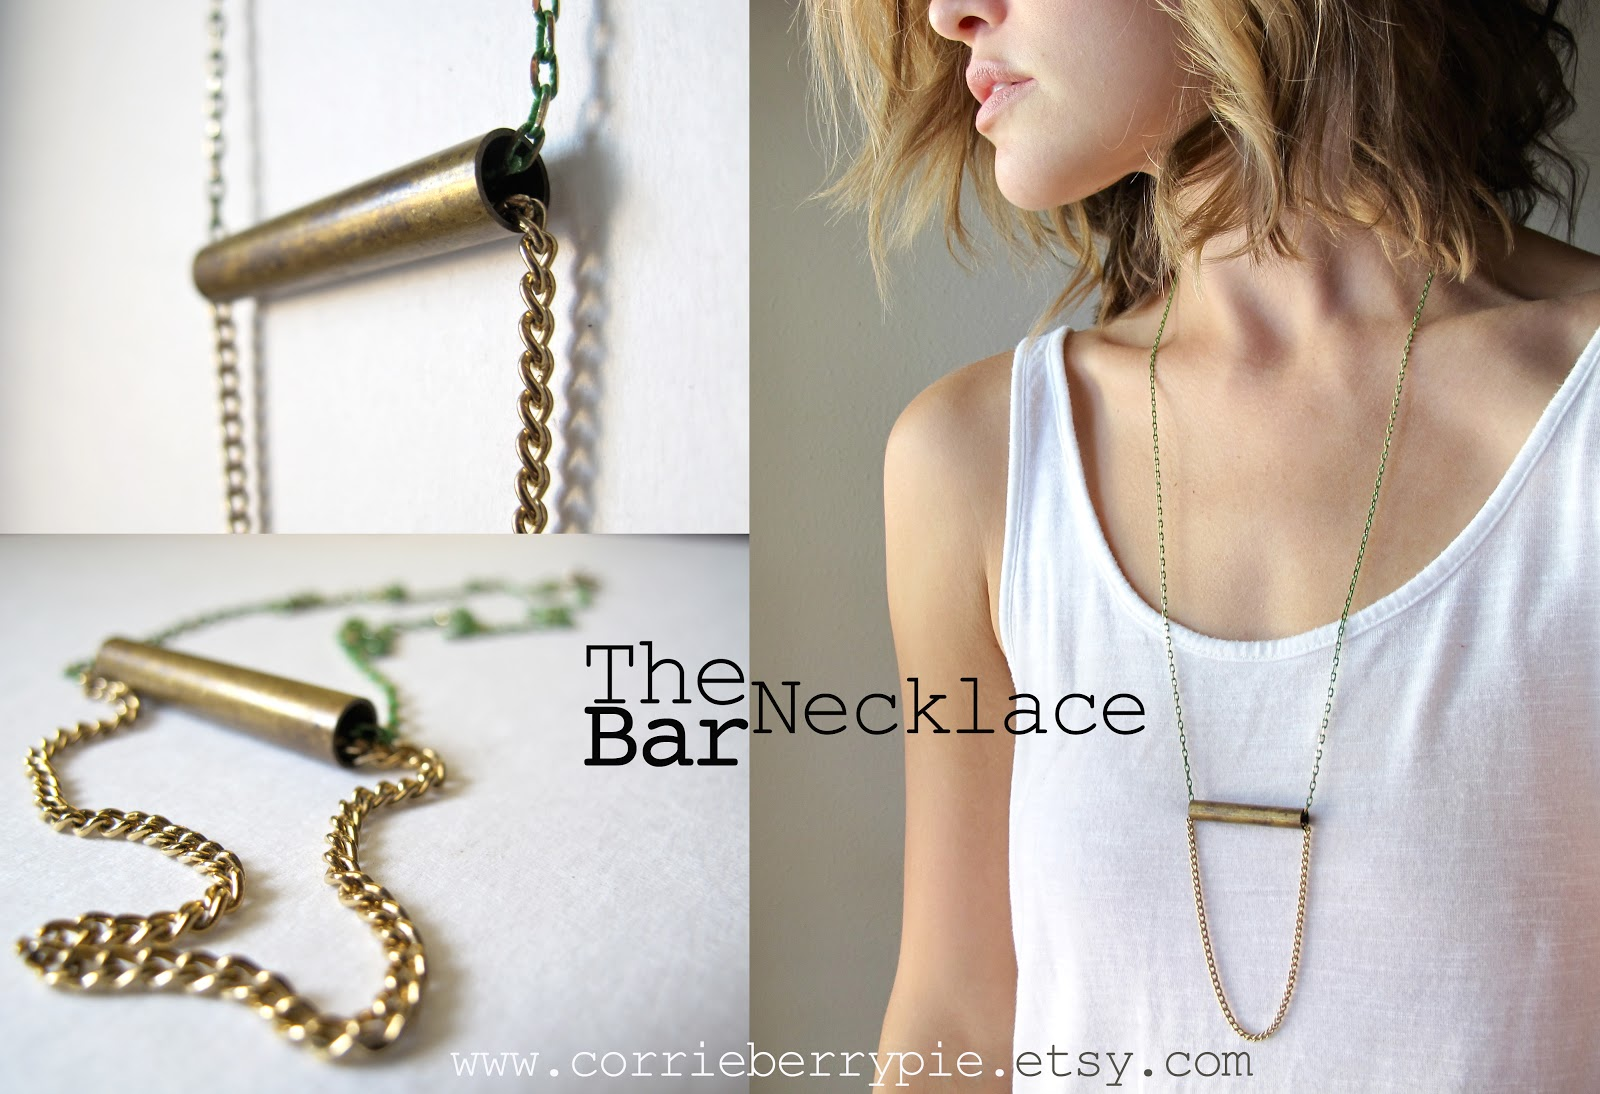 the bar necklace collage.jpg